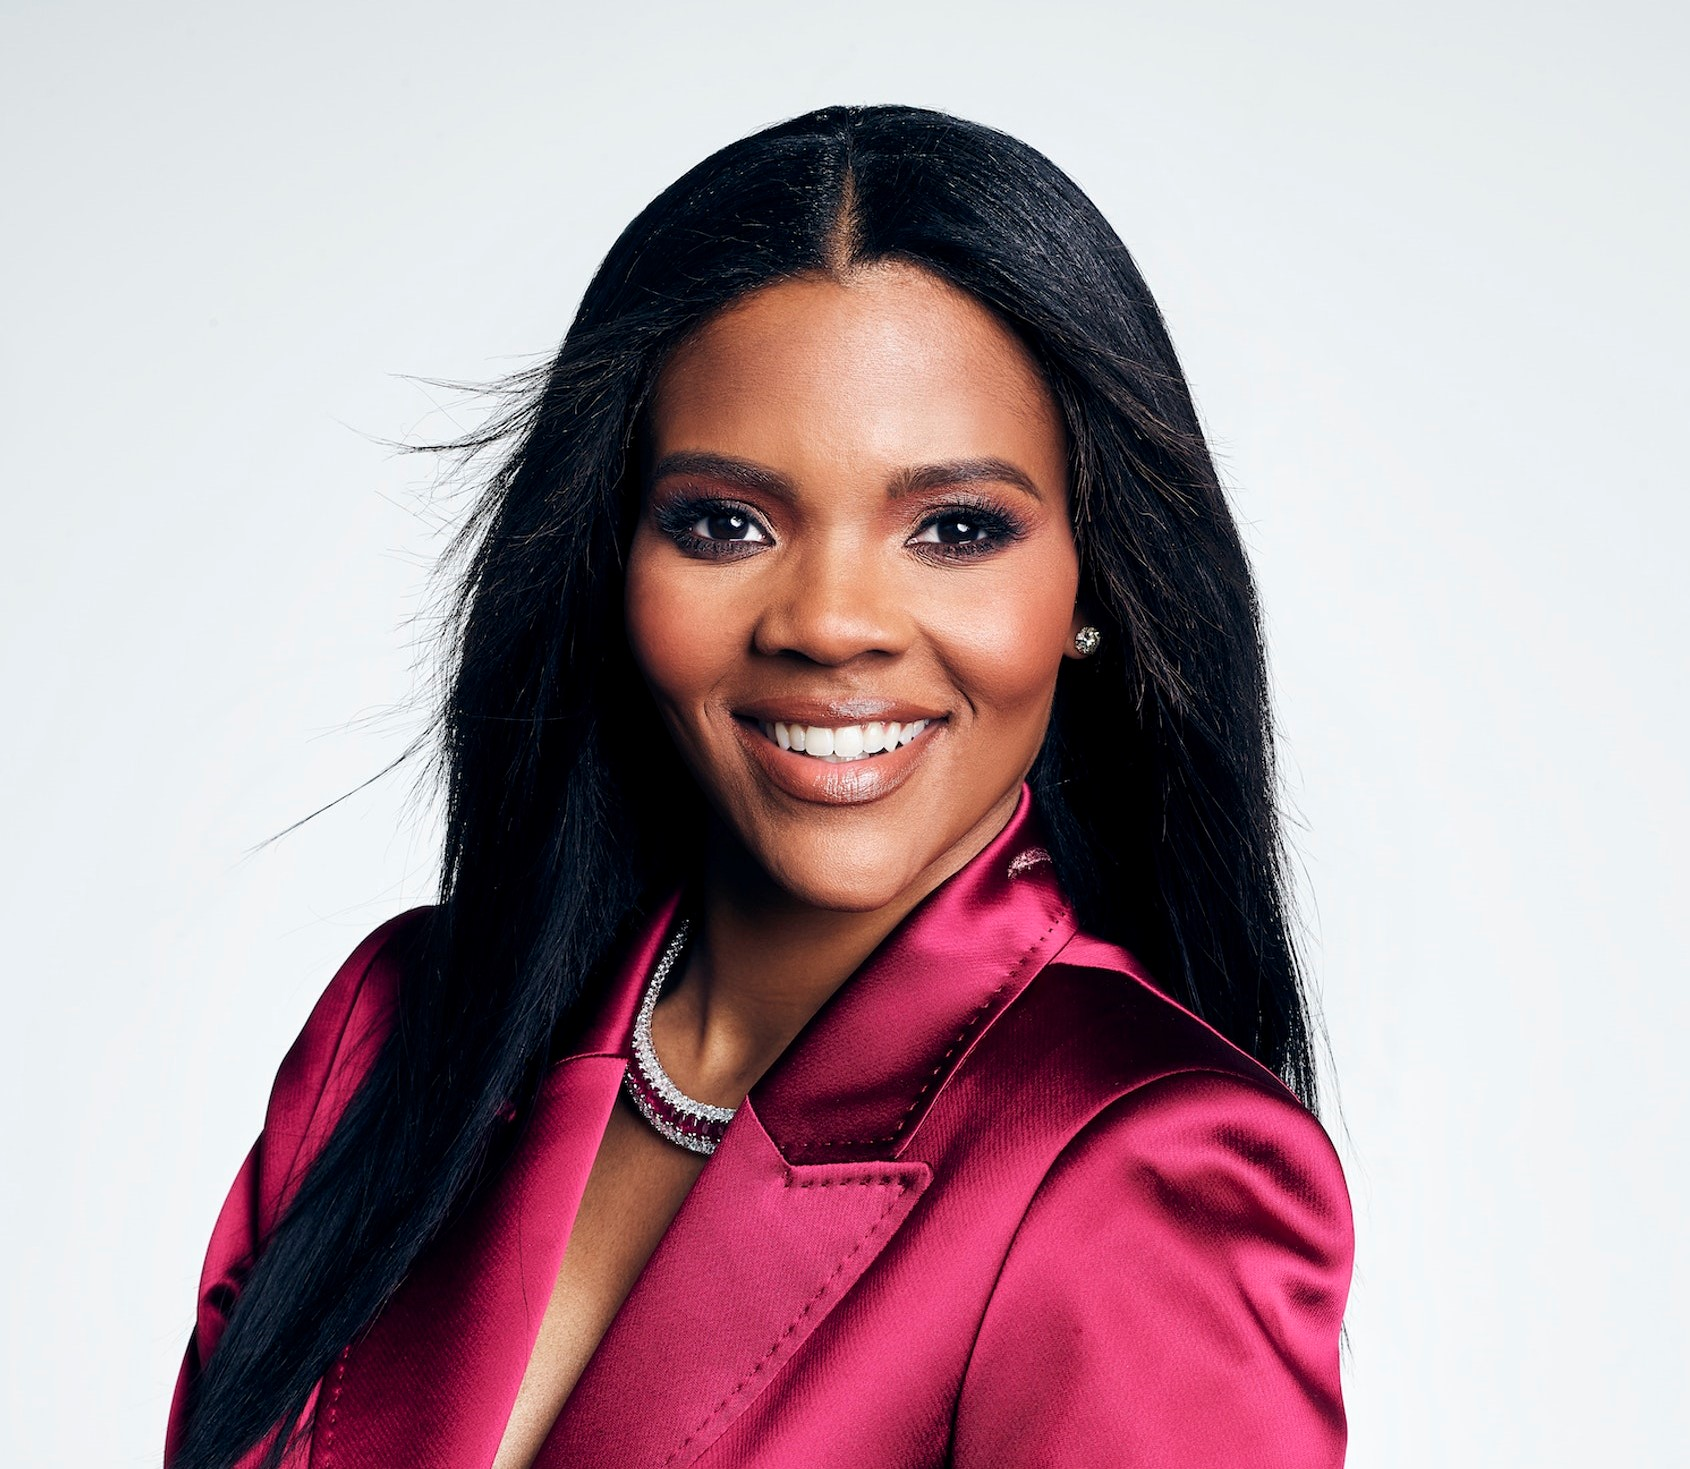 Candace Owens Biography